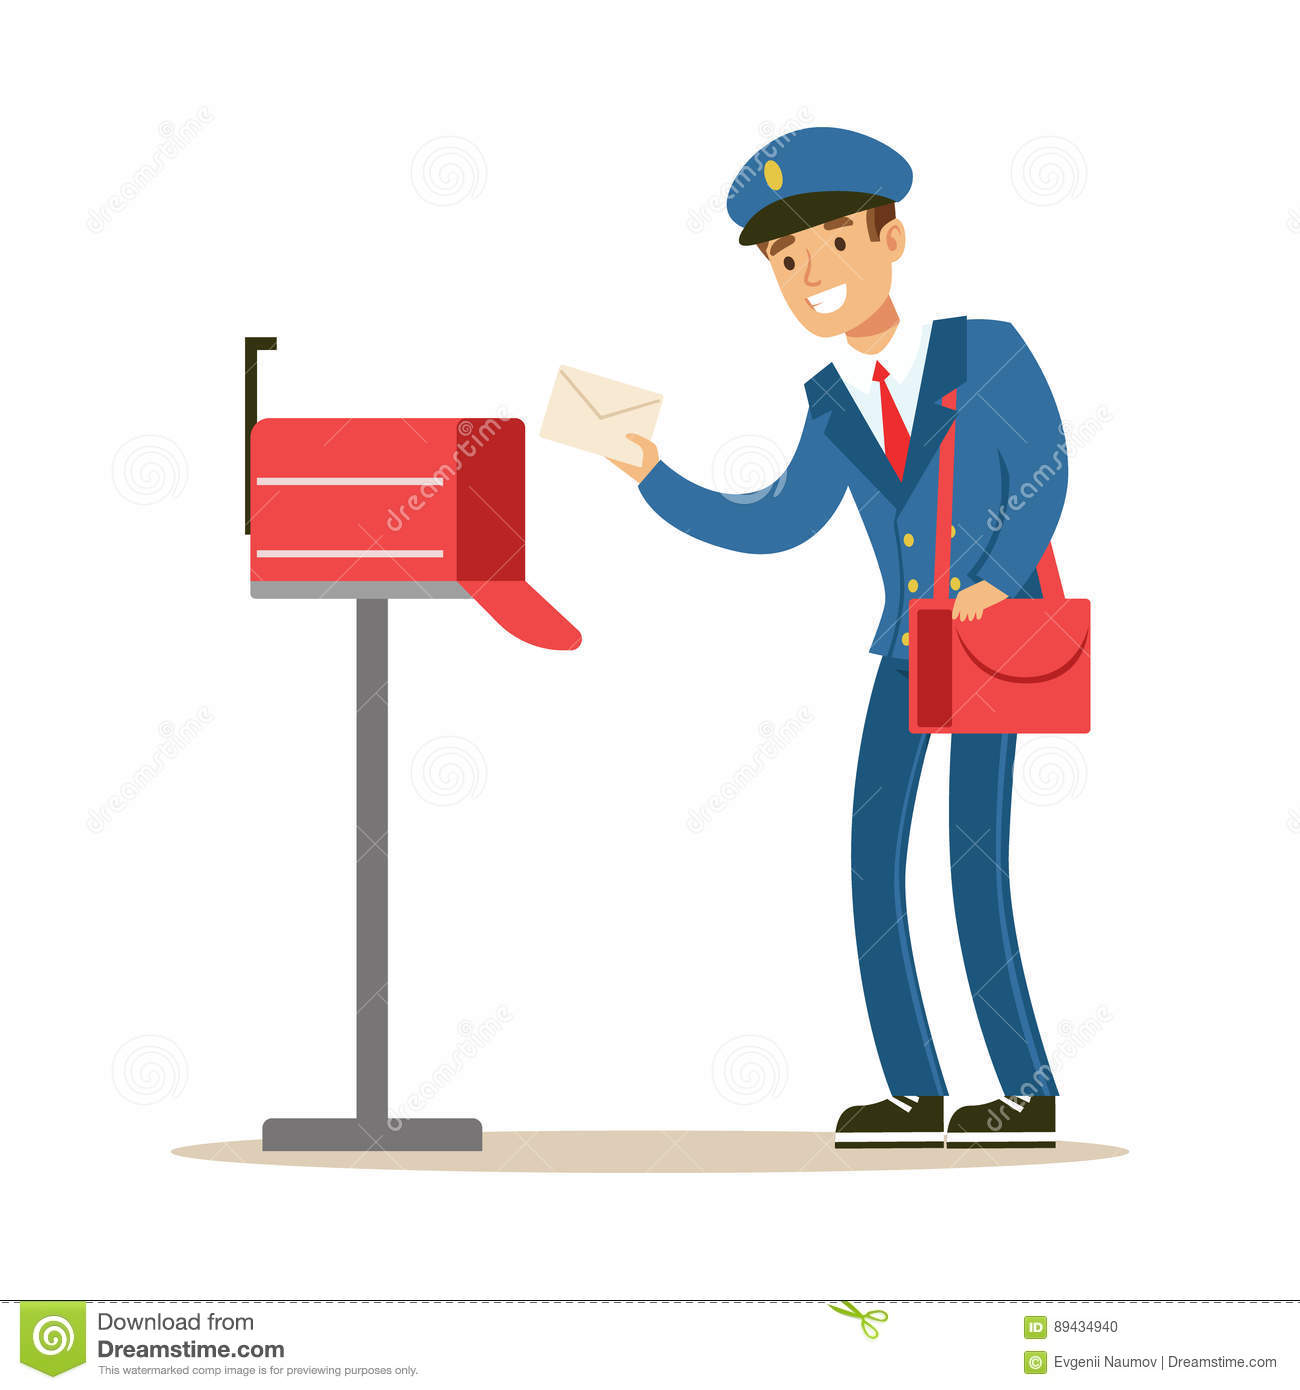 Postman In Blue Uniform Delivering Mail Putting Letters In Mailbox